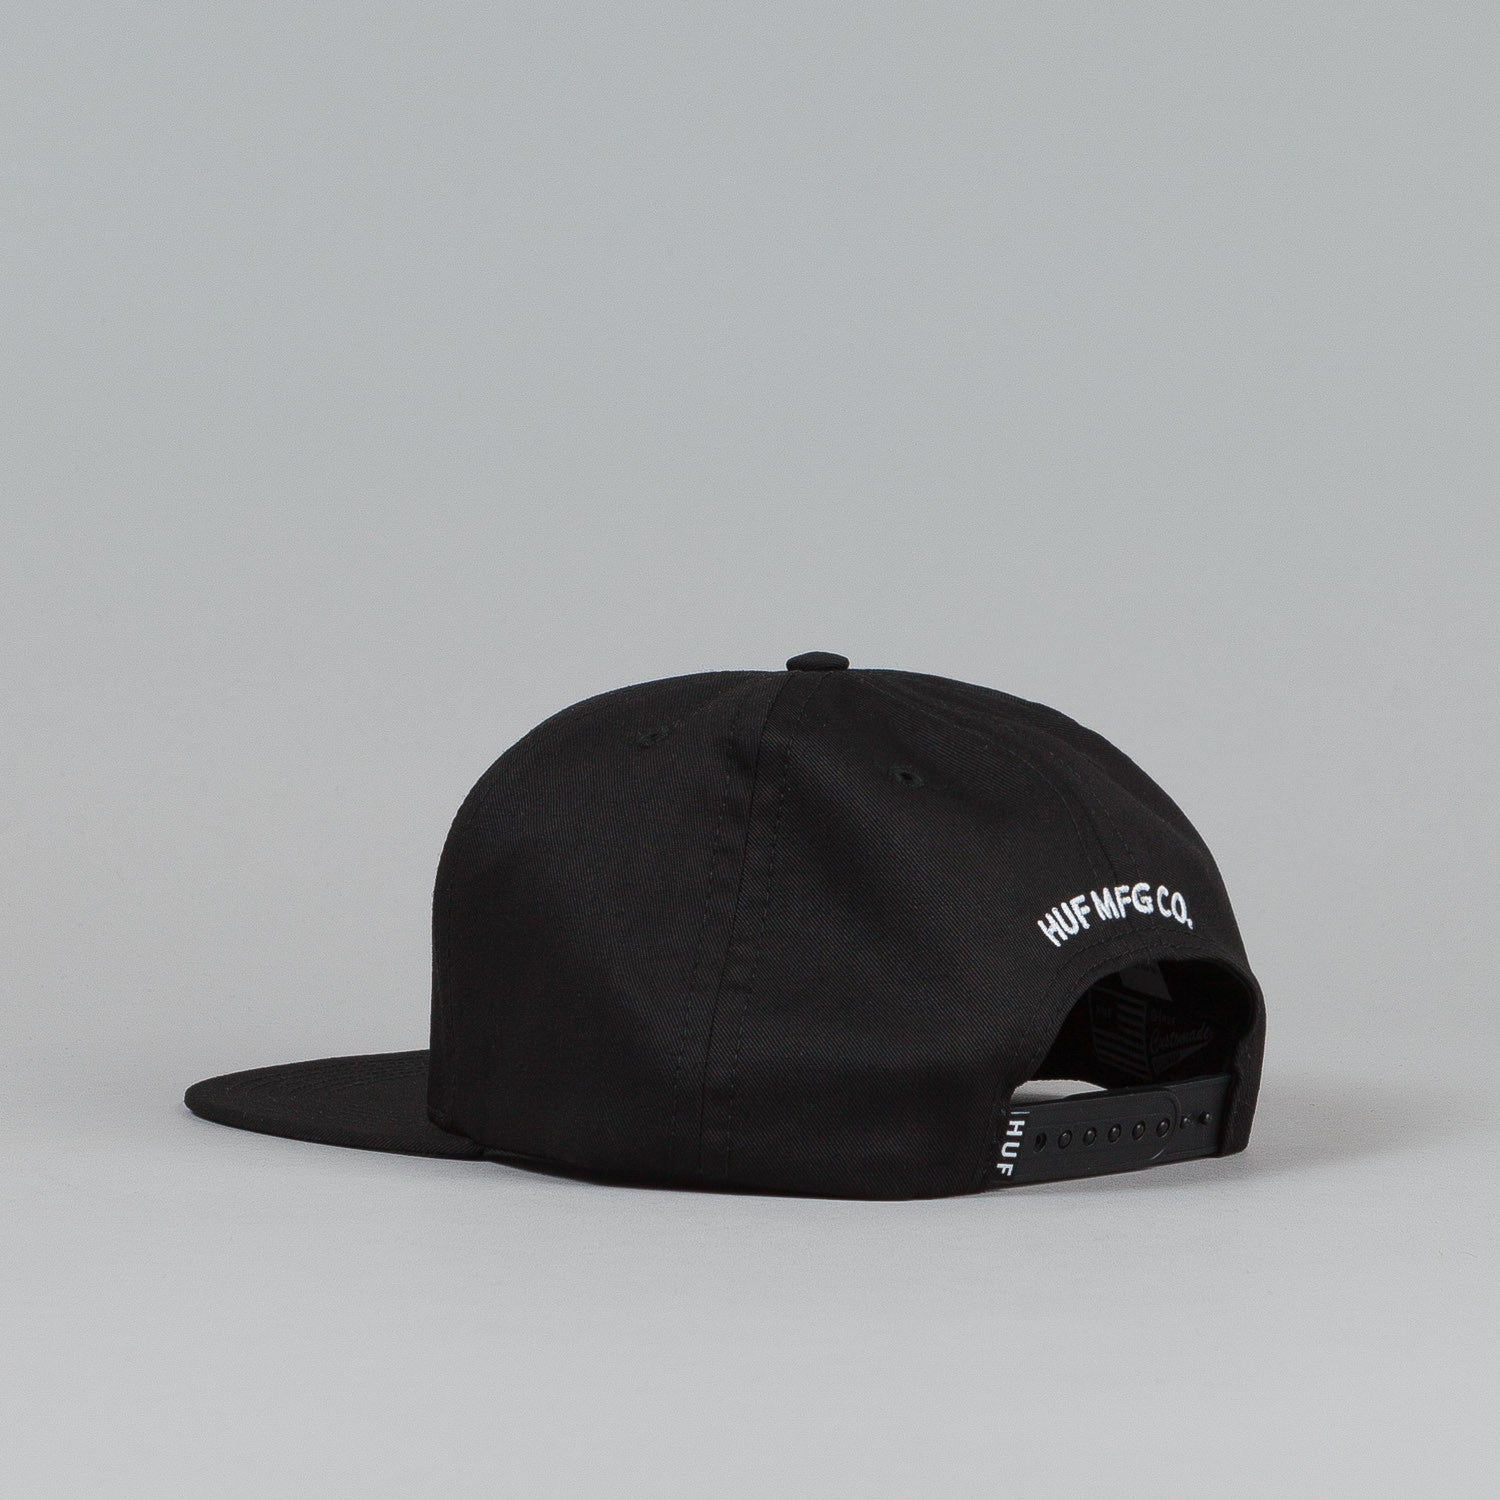 HUF Watt Up Snapback Cap Black